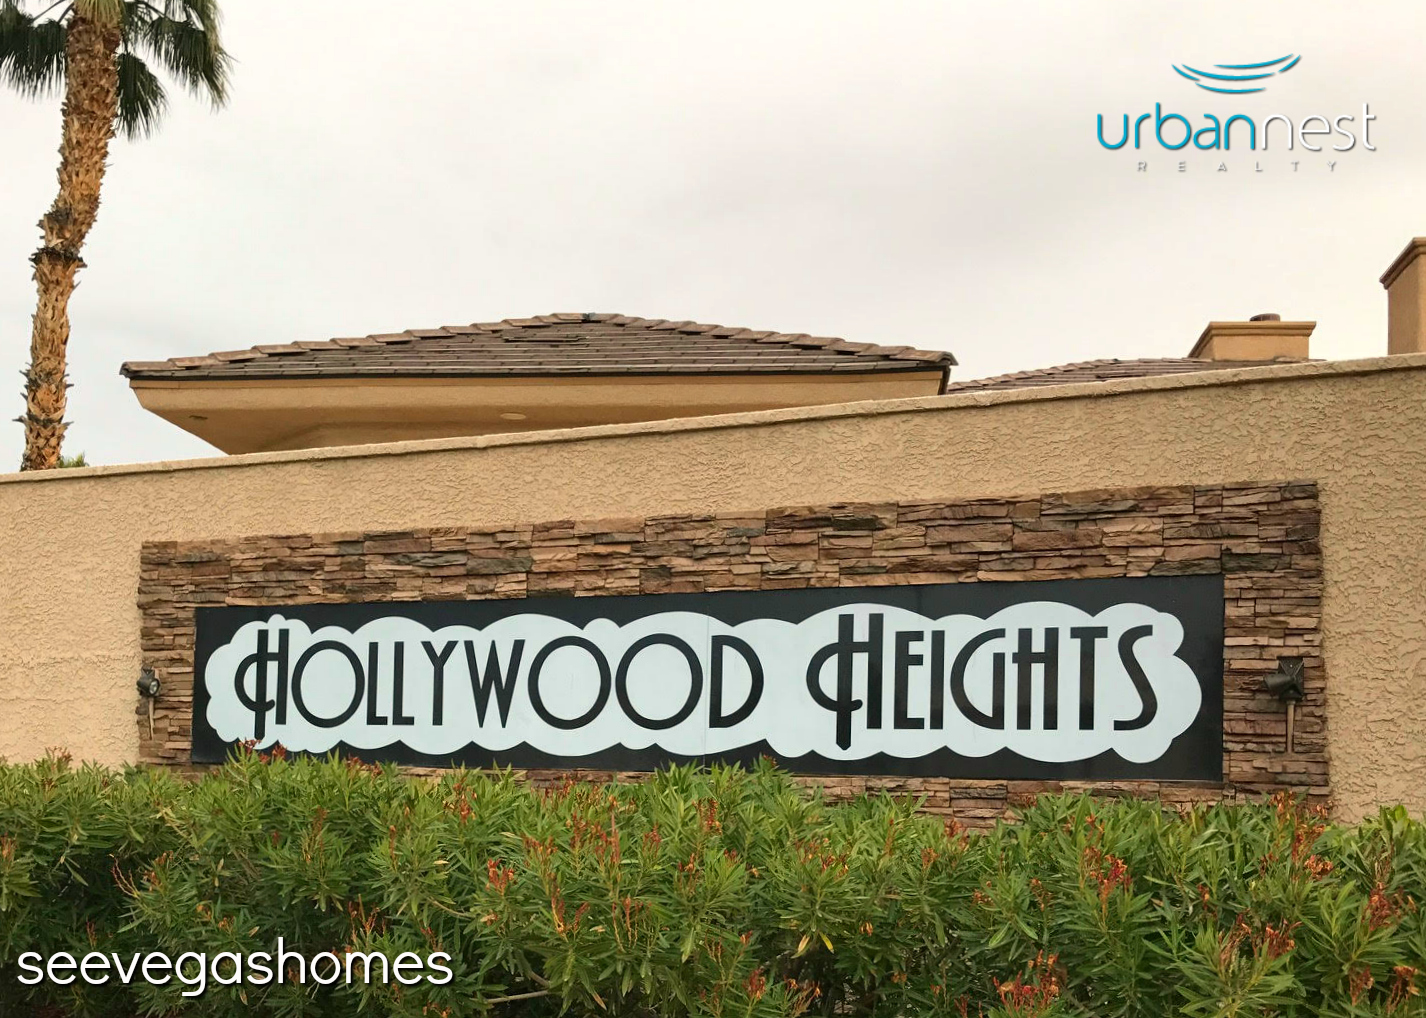 Hollywood Heights Las Vegas NV 89110 SeeVegasHomes